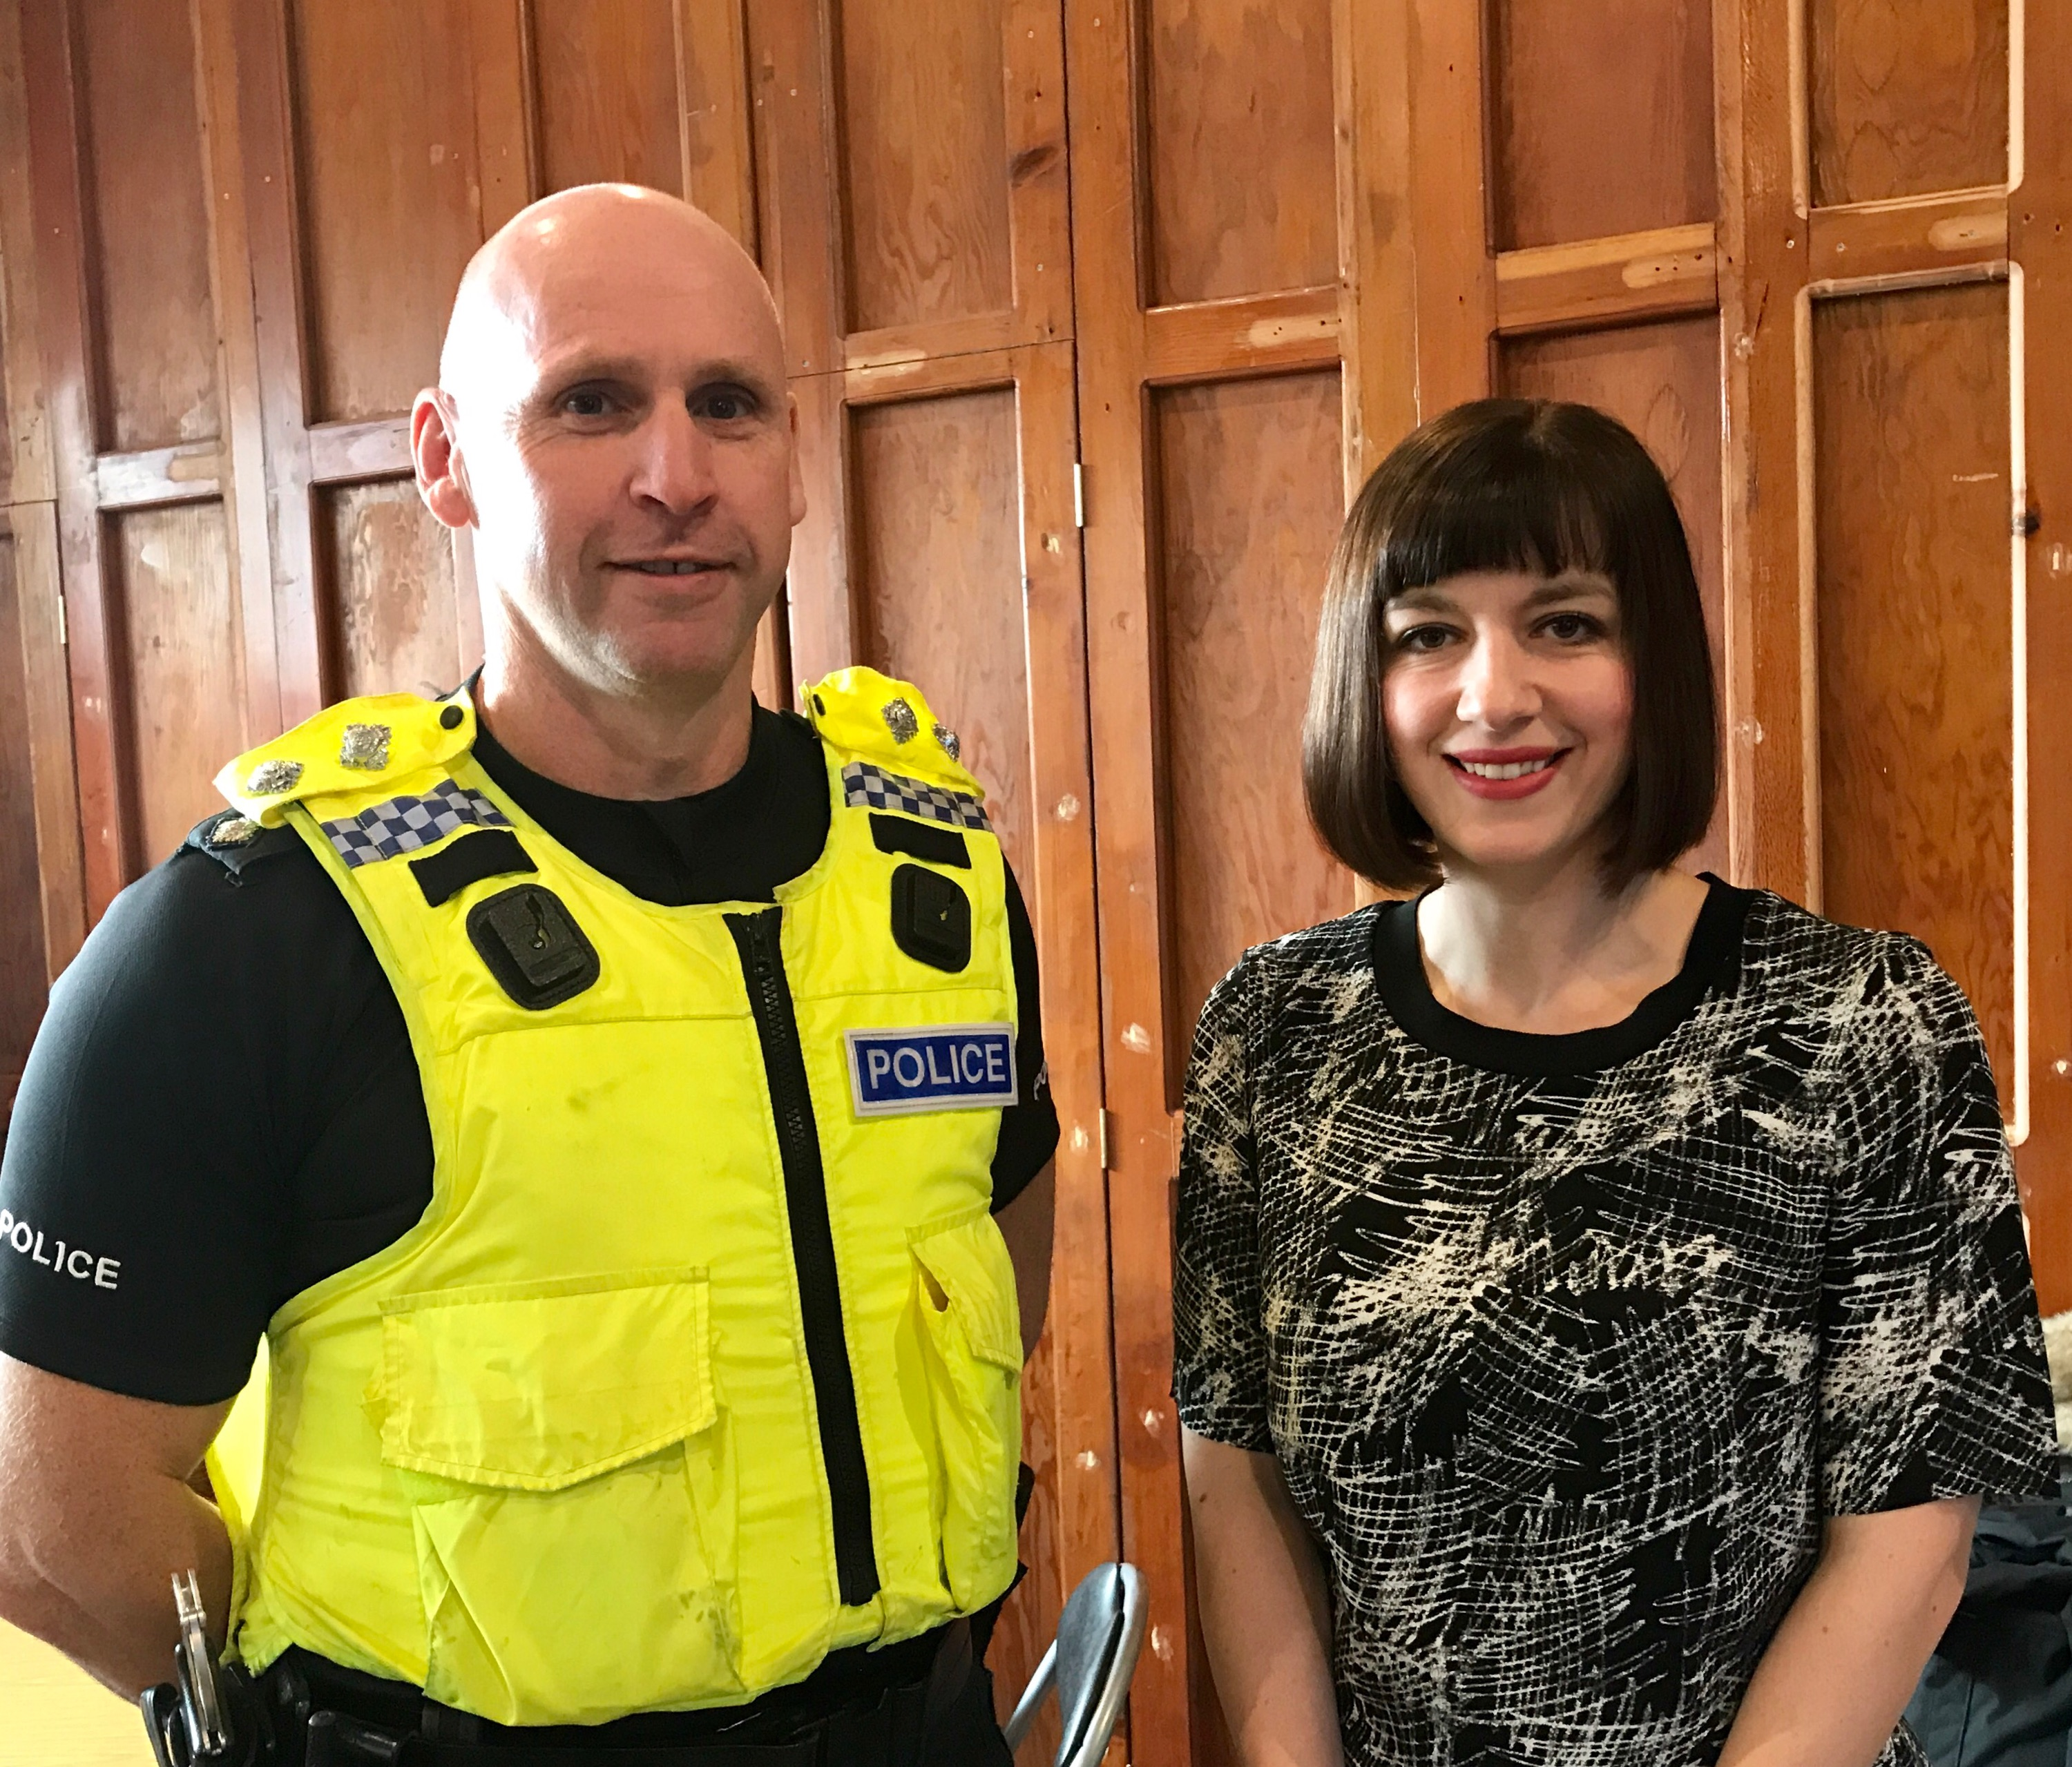 Bridget_Phillipson_MP_Inspector_Tony_Carty_Coffee_Morning_15-09-2017.jpeg